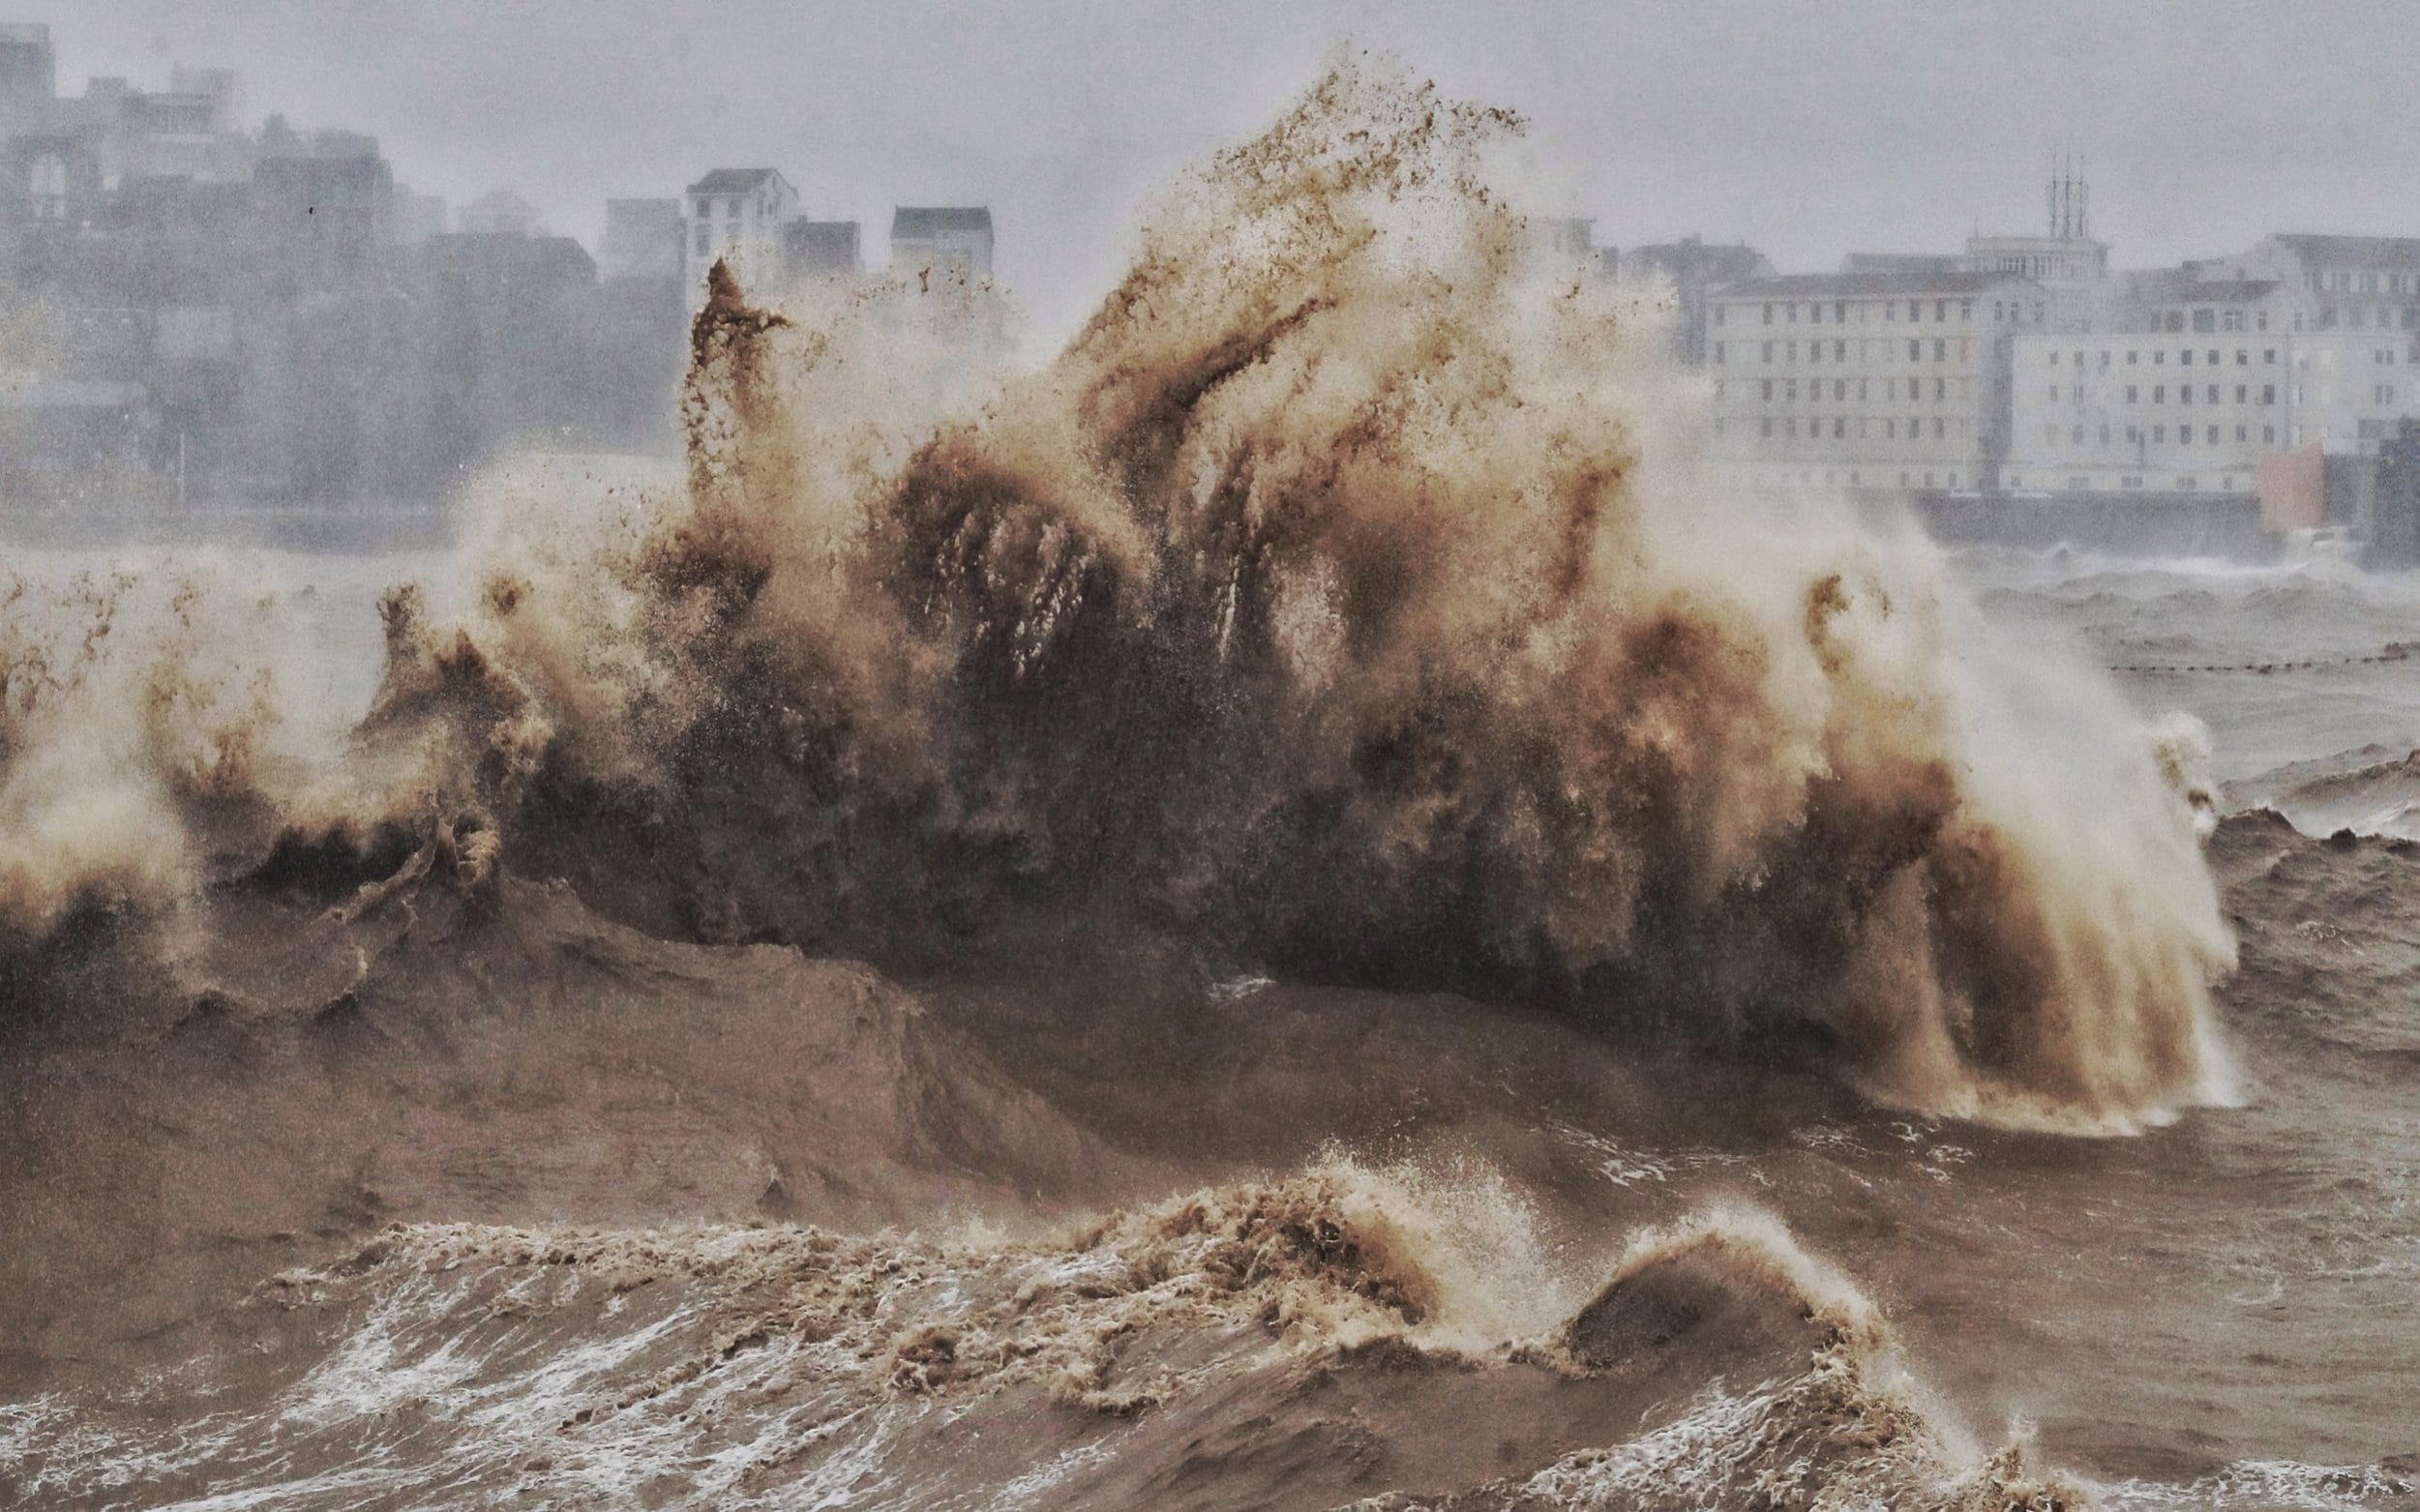 18 dead after landslide triggered by typhoon in China